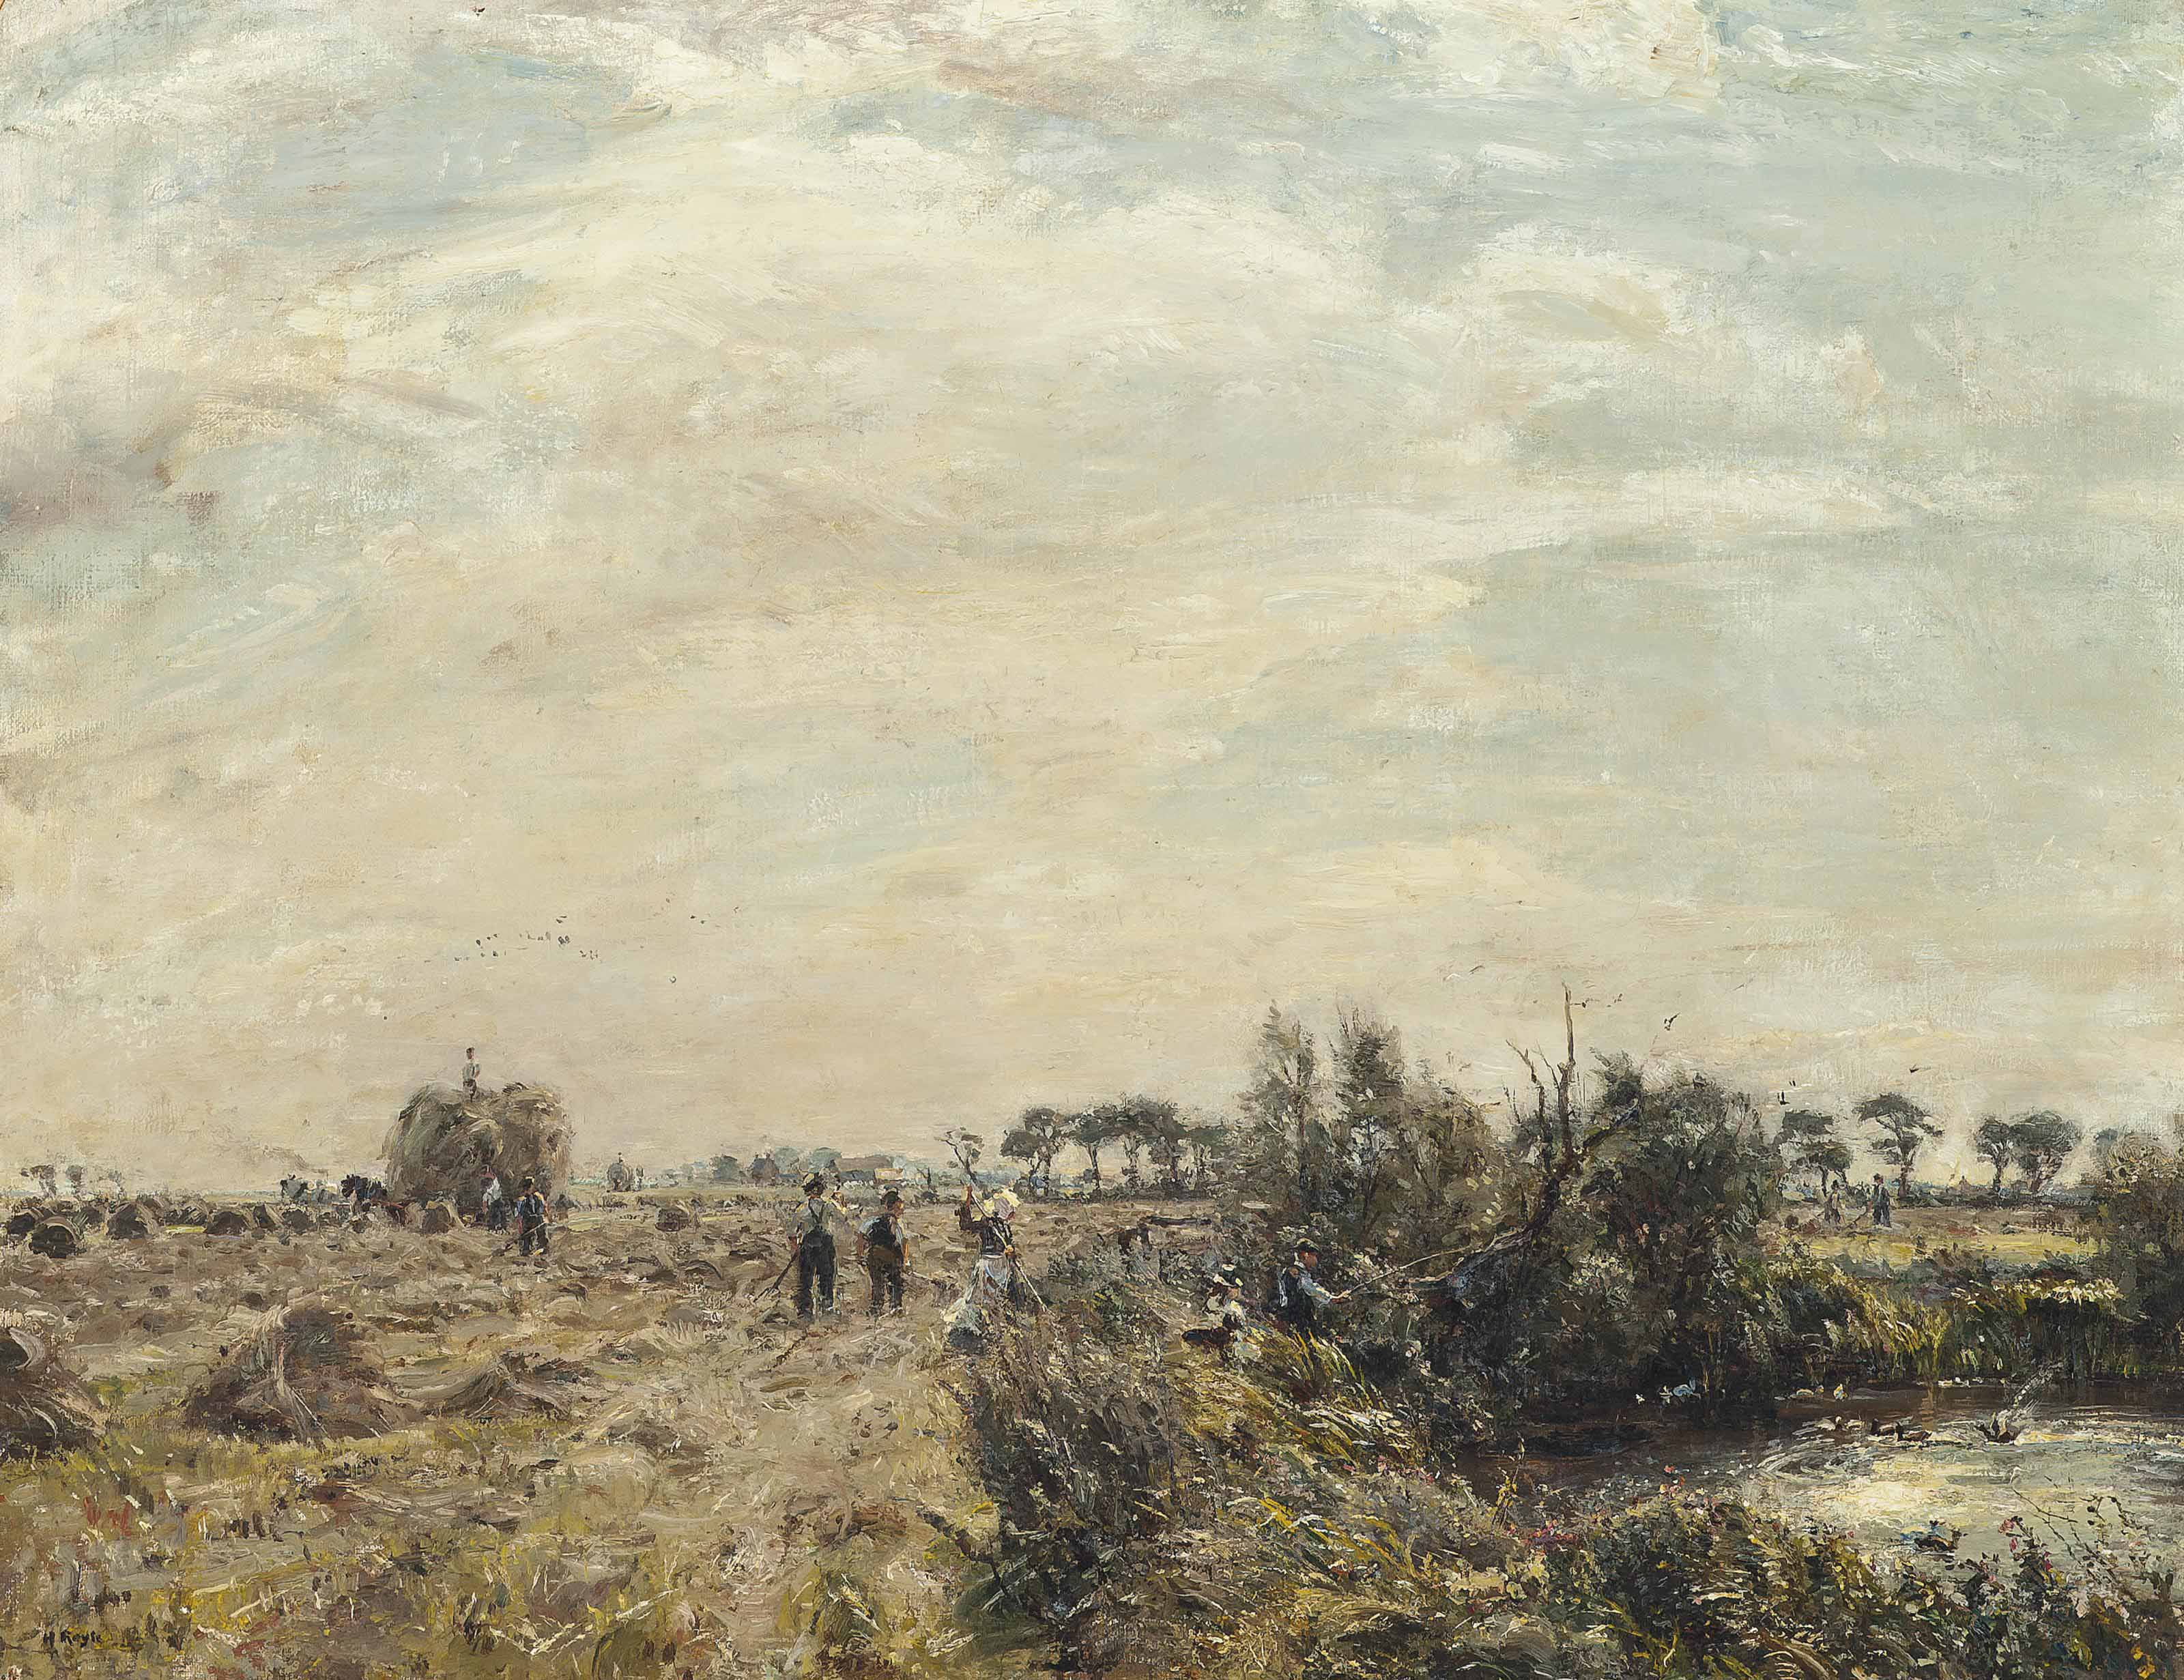 Harvesters in a field and fishermen by a pond